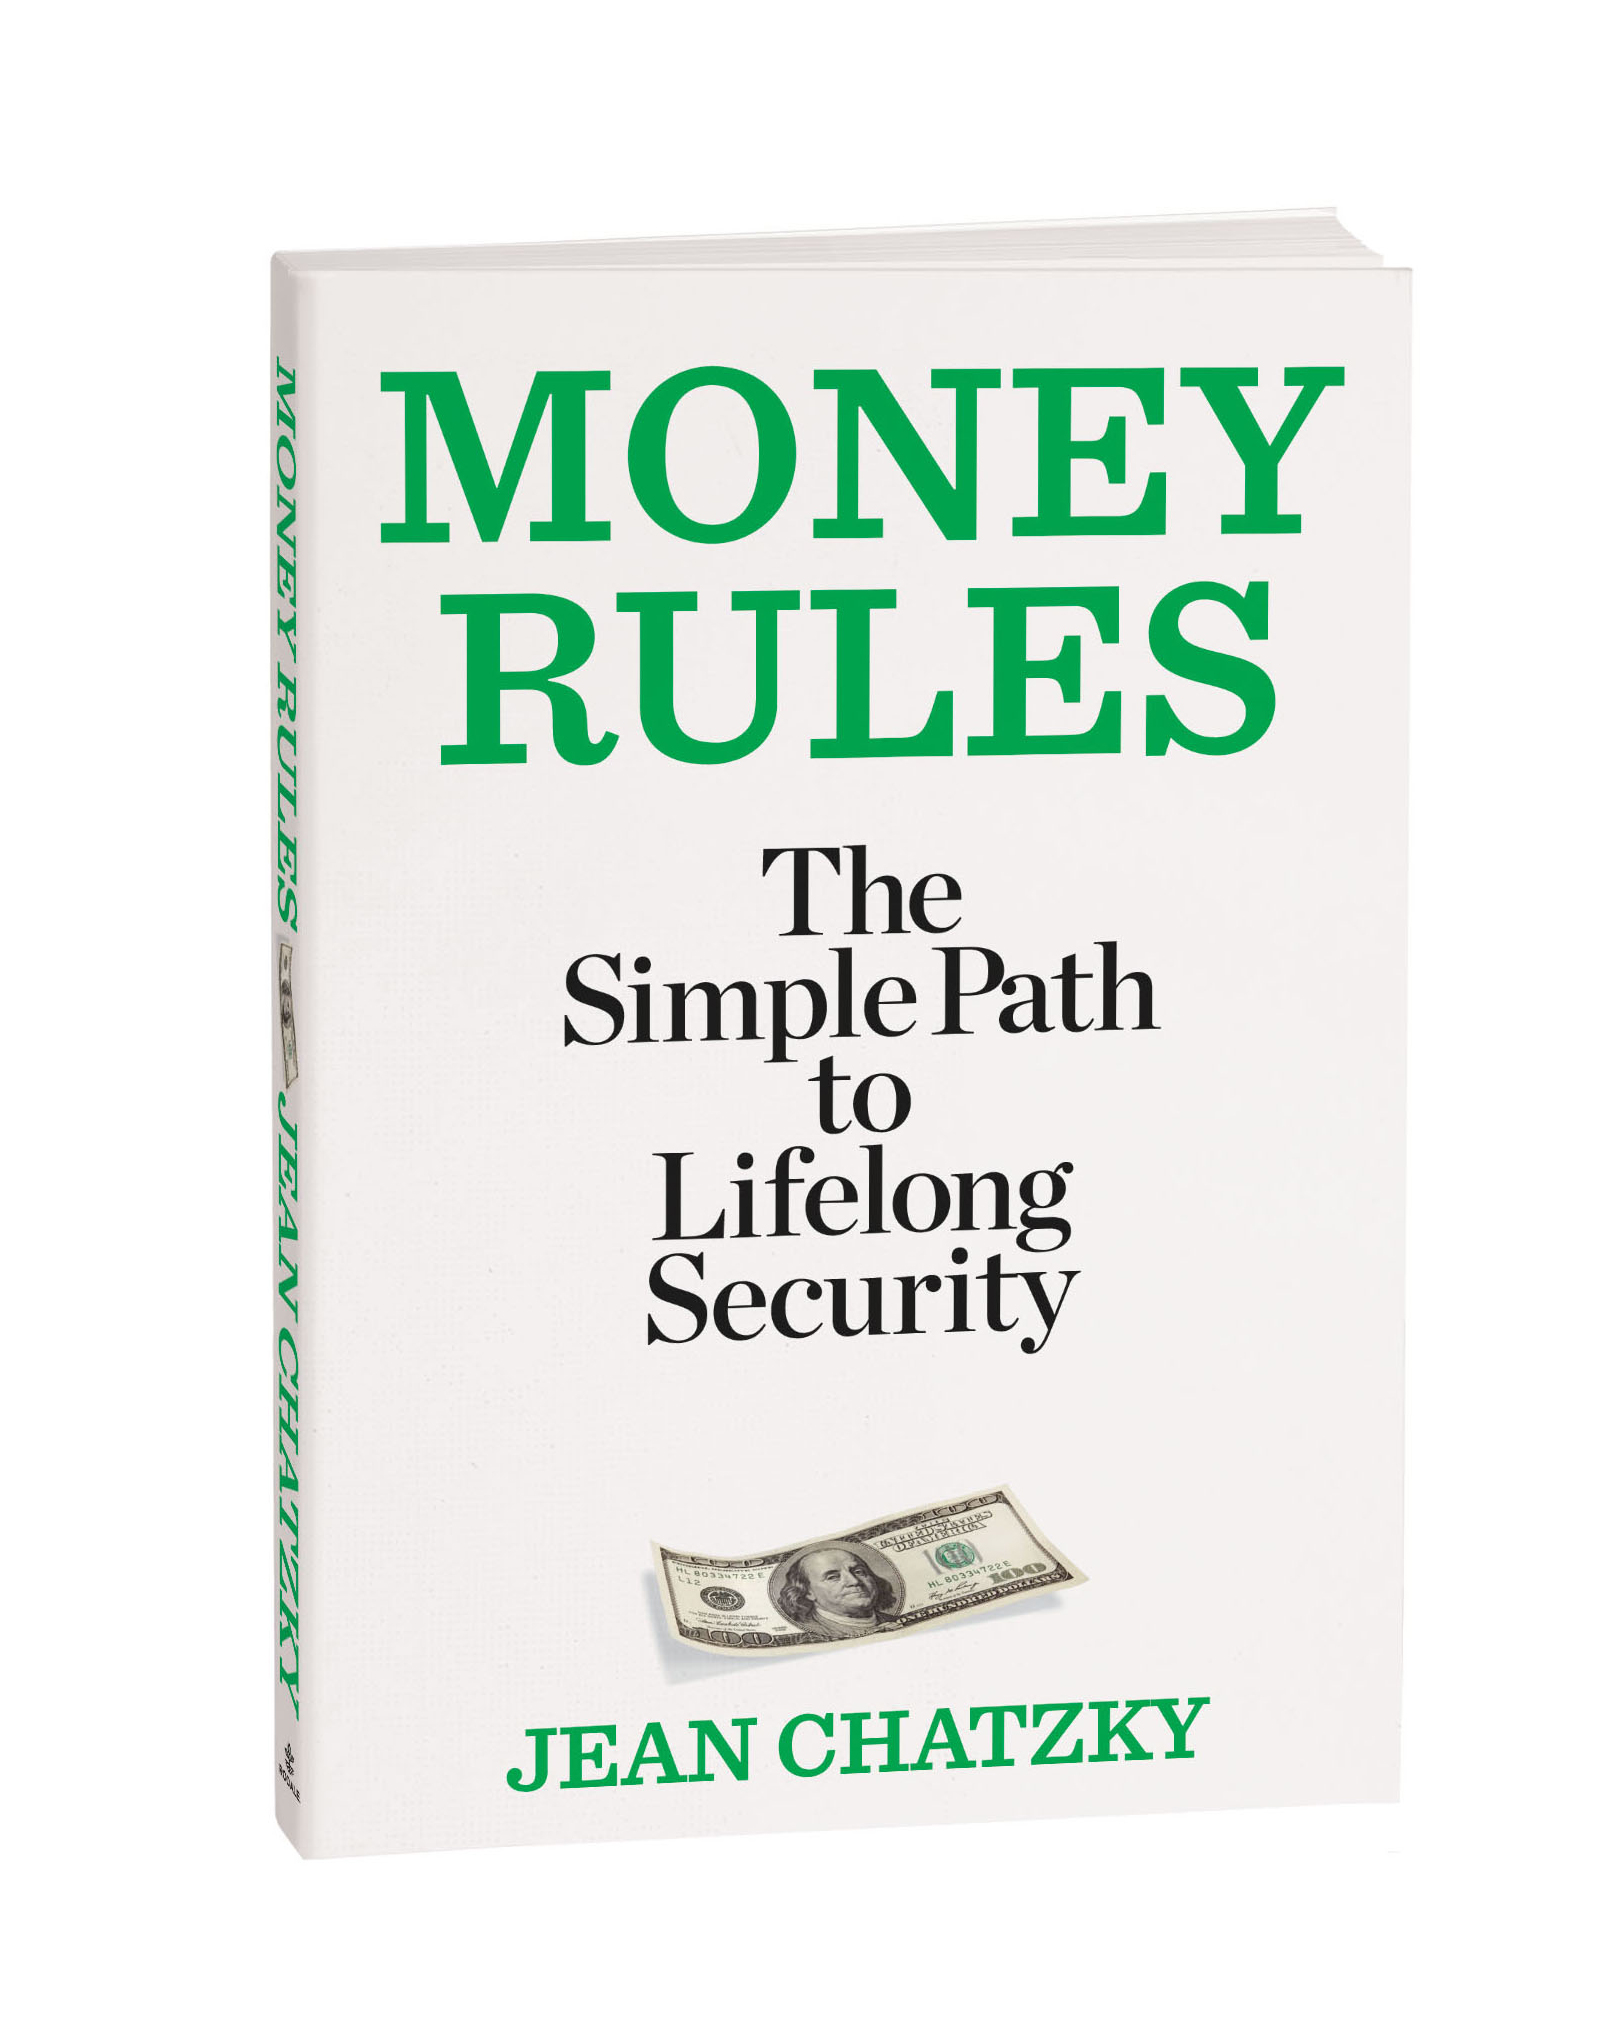 books-for-newlyweds-jean-chatzky-money-rules-0415.jpg